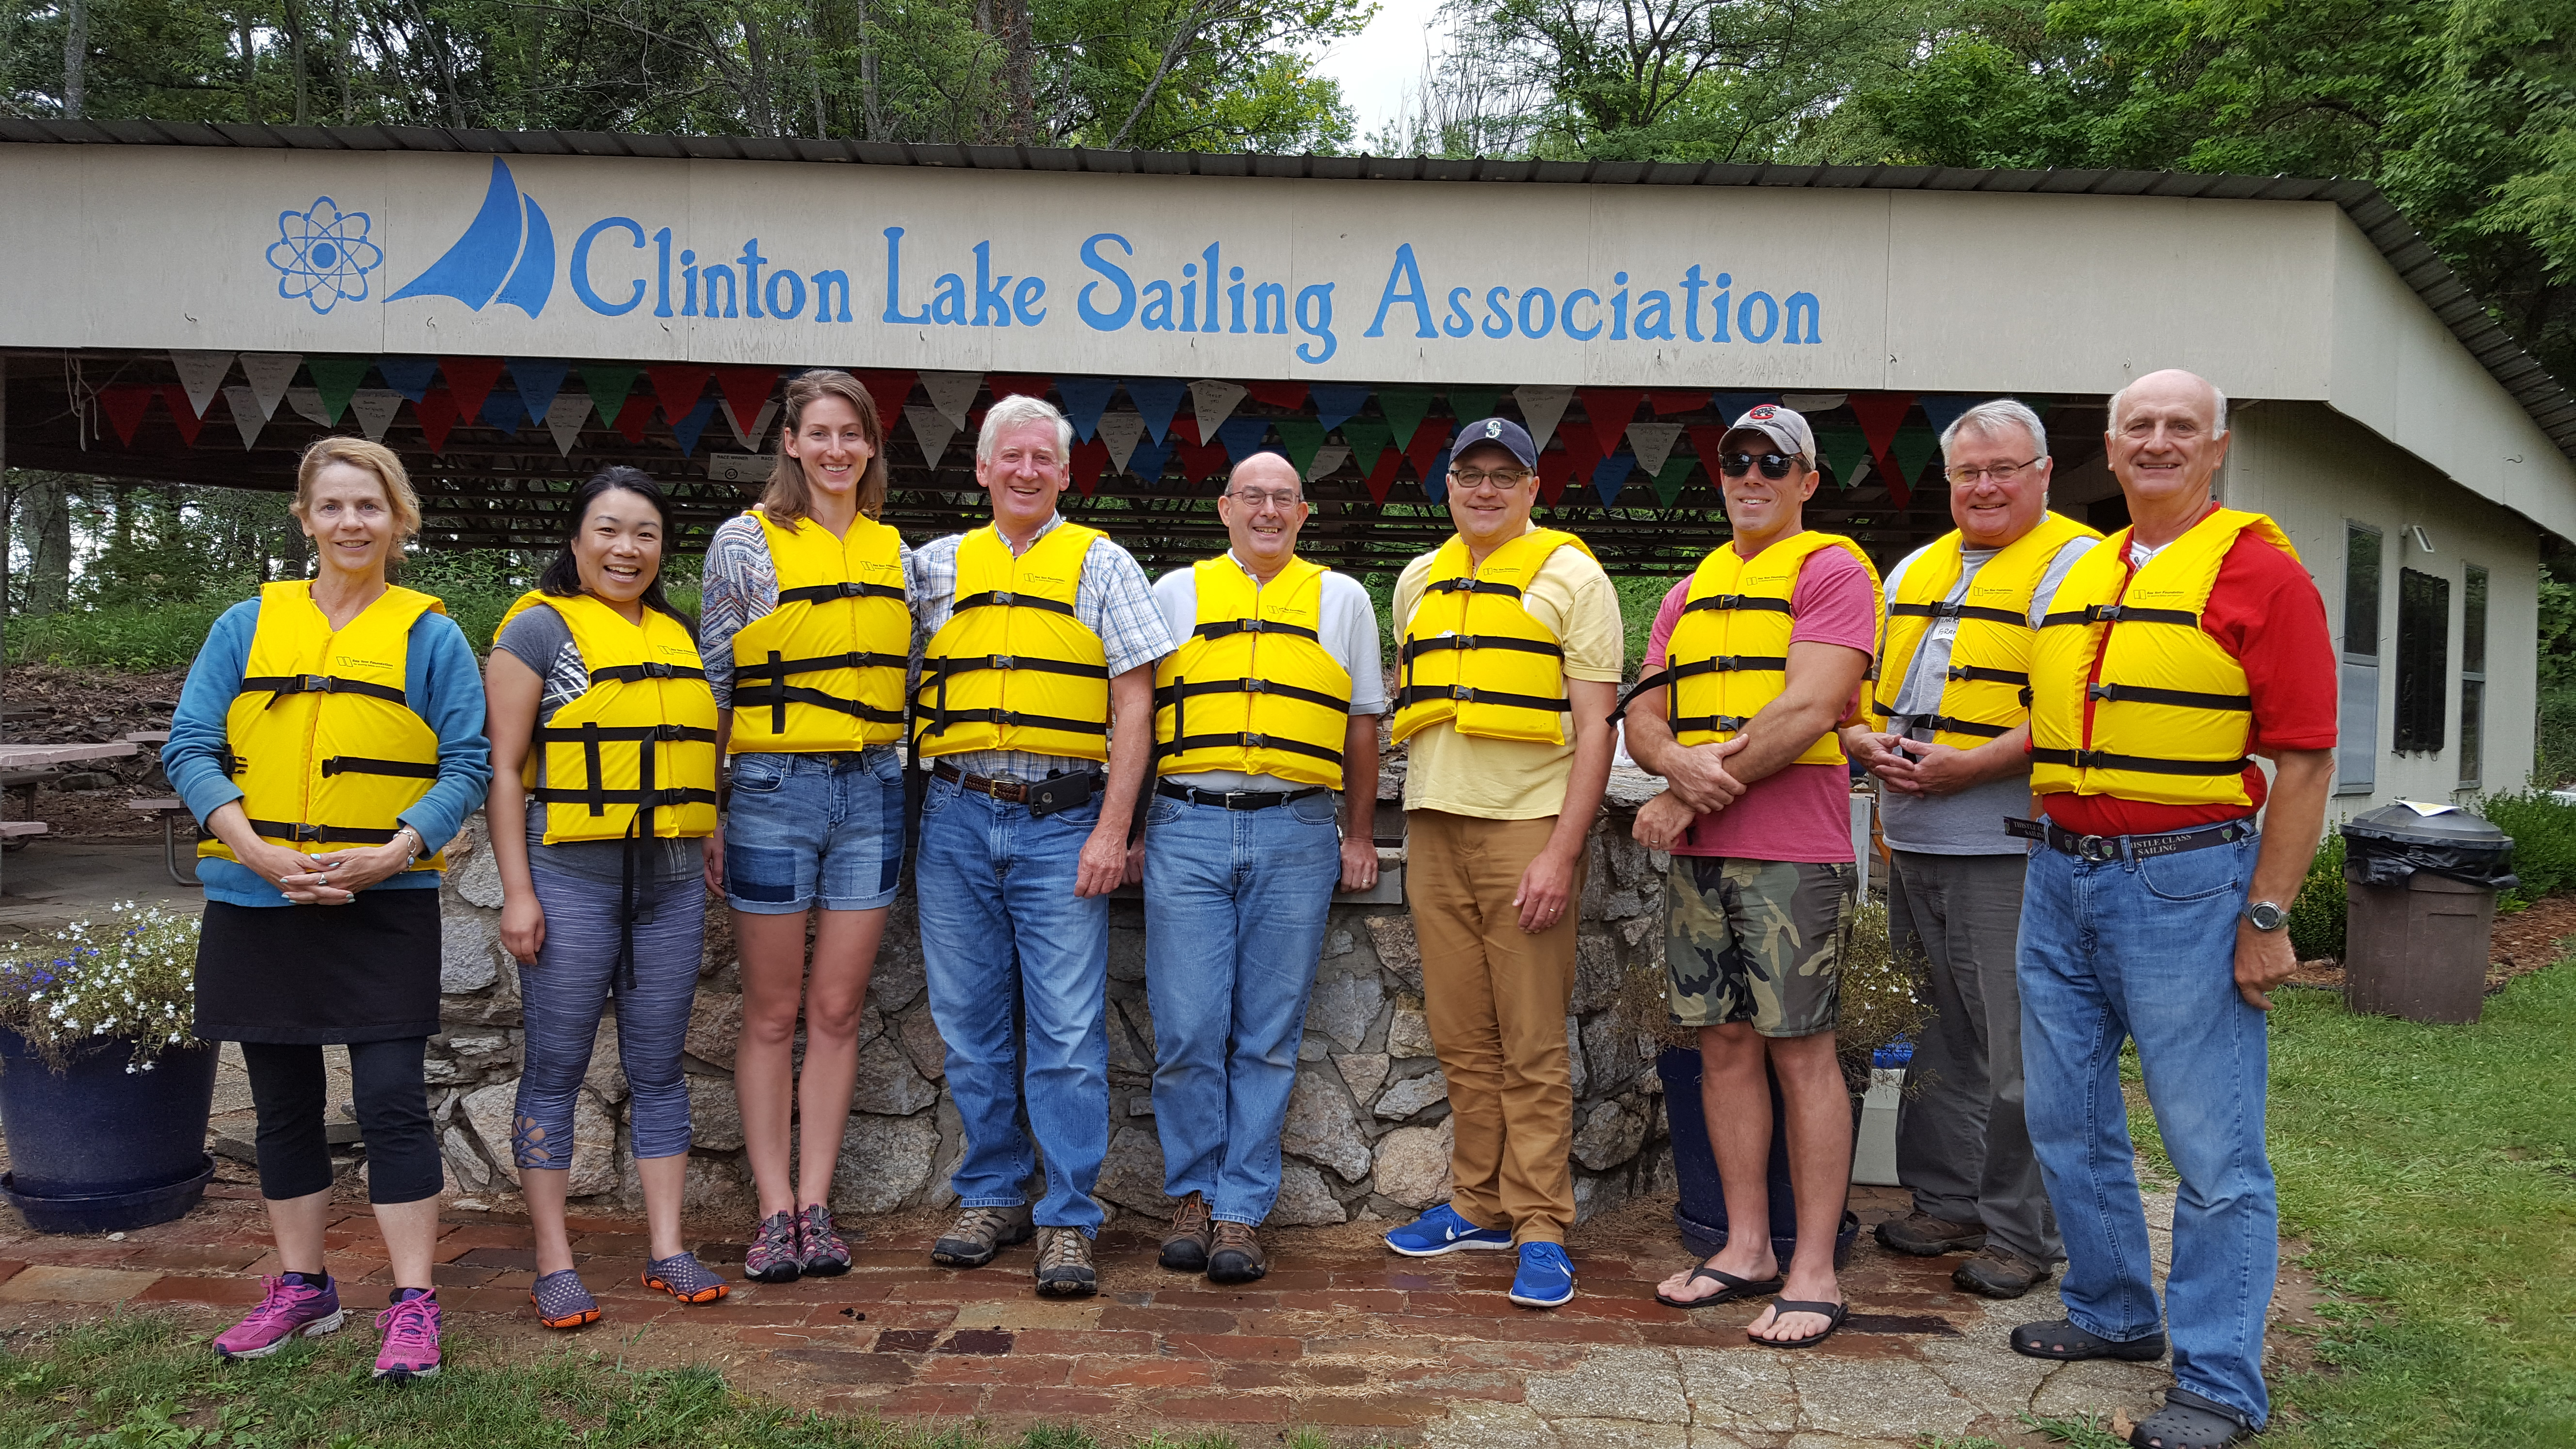 Group of people wearing life jackets at a sailing association